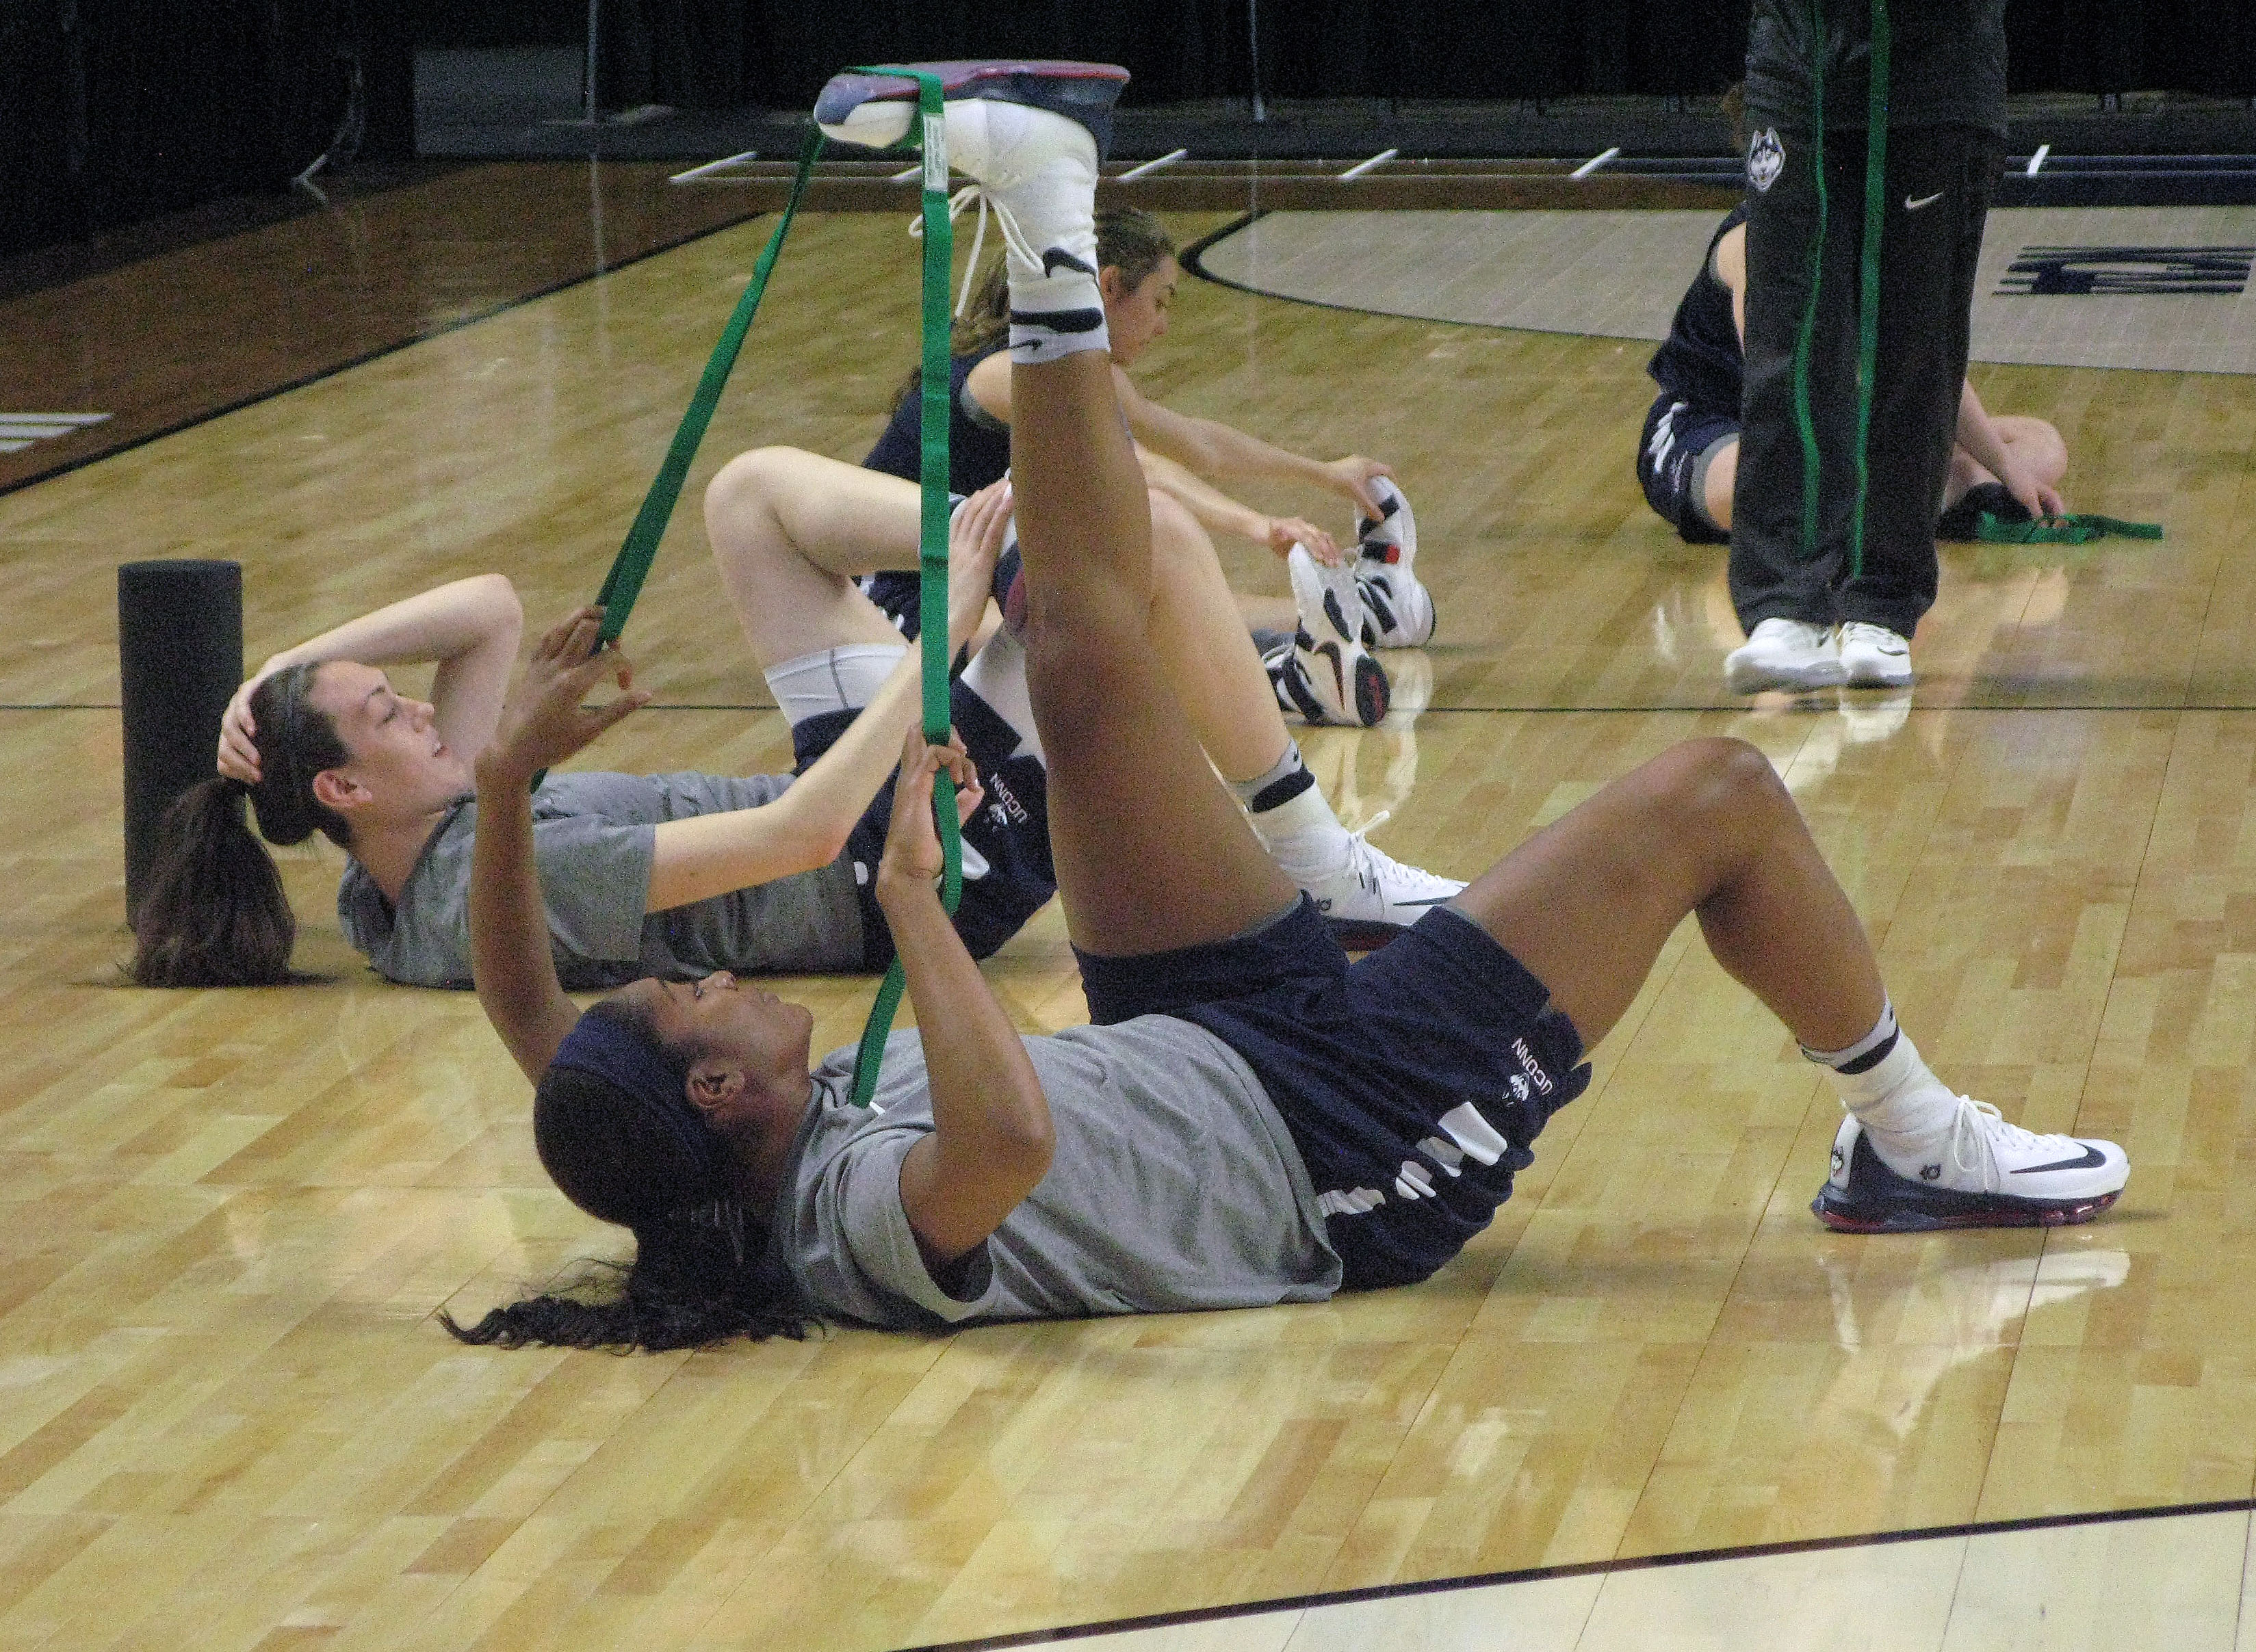 UConn's Morgan Tuck, foreground, and Breanna Stewart stretch during practice for Saturday's NCAA women's college regional semifinal game with Mississippi State at the Webster Bank Arena in Bridgeport, Conn., Friday, March 25, 2016.  The Huskies are making